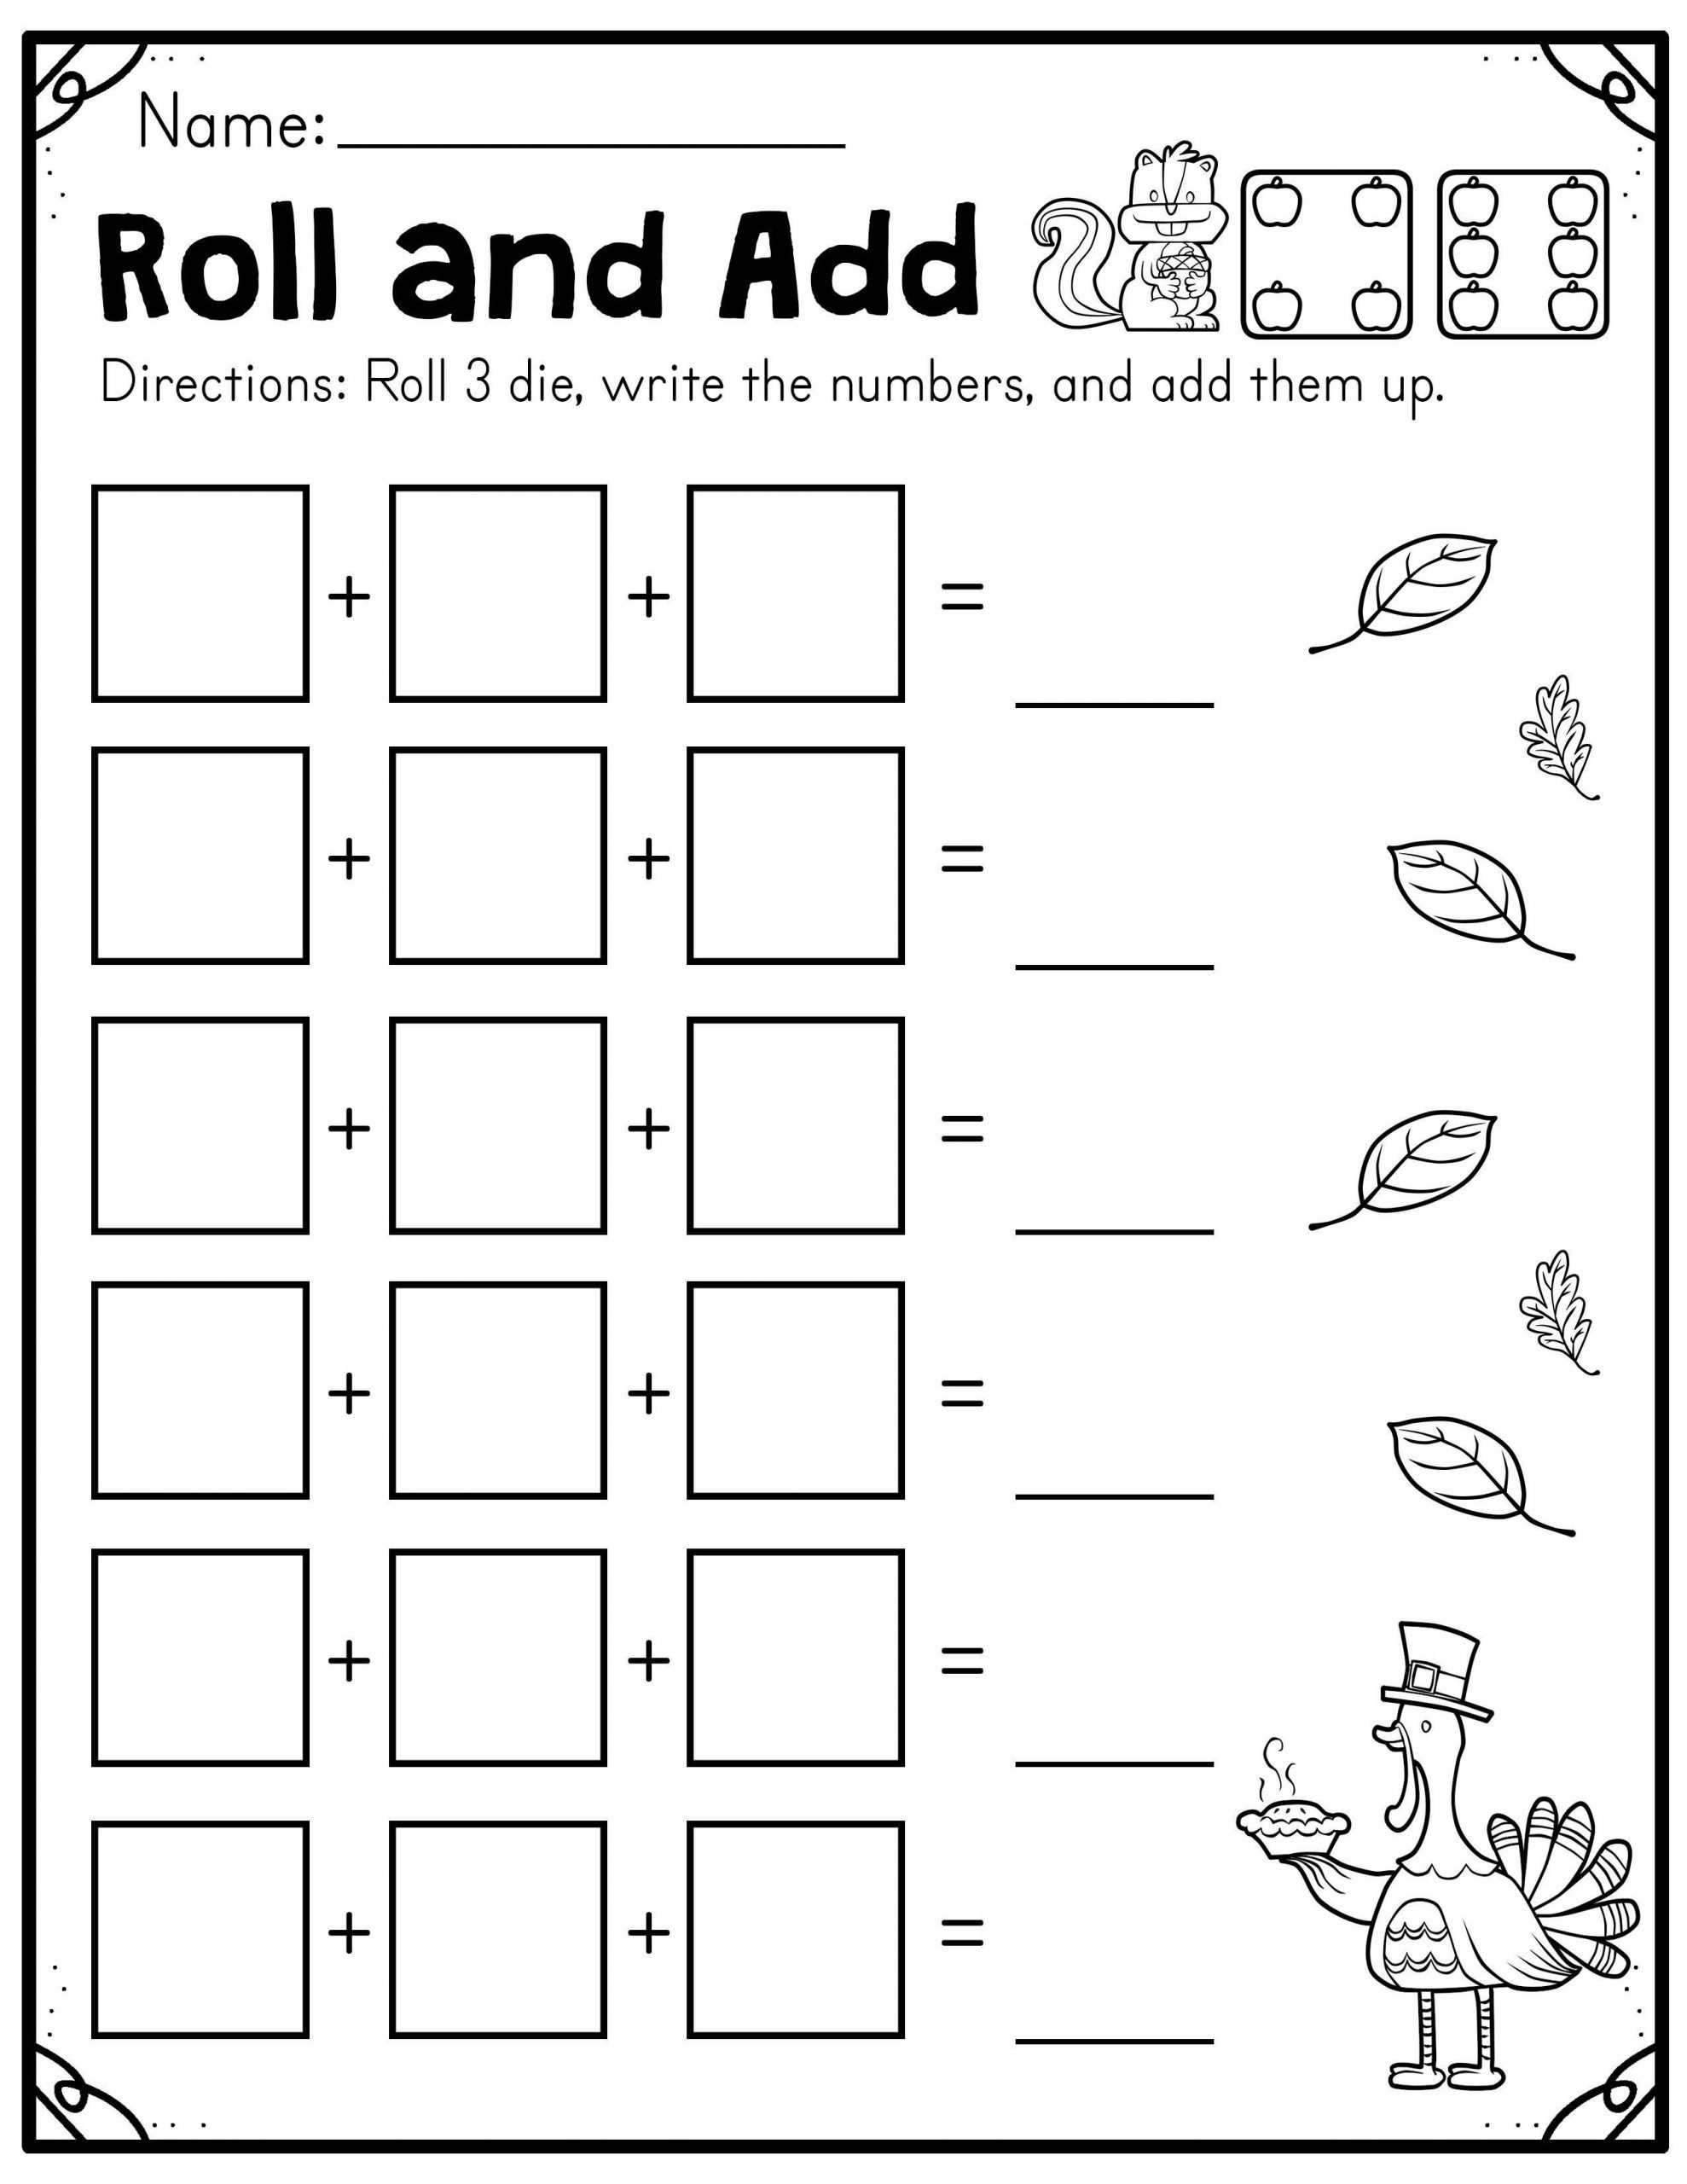 Fall Worksheets for Kindergarten Fall Roll and Add Worksheet First Grade Madebyteachers